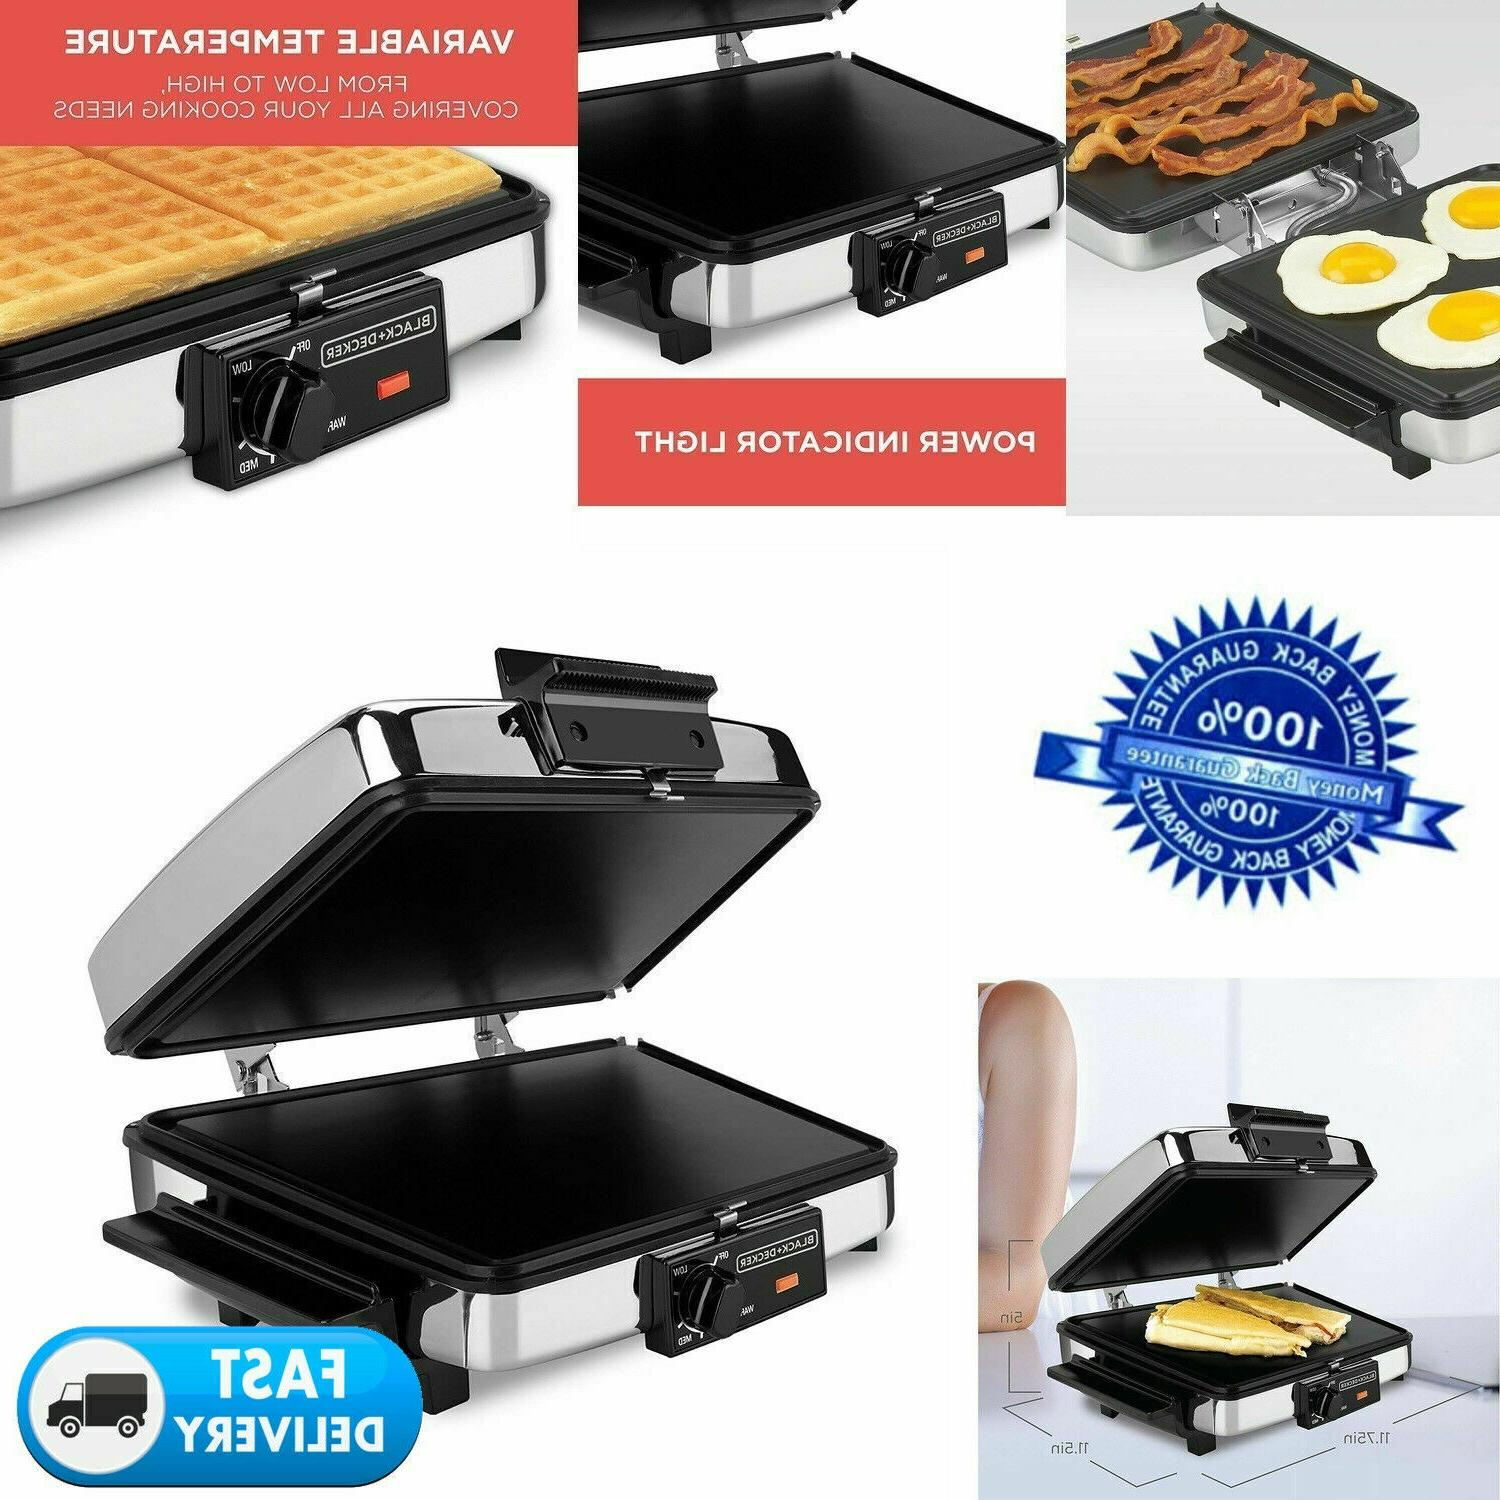 waffle iron griddle sandwich maker indoor grill